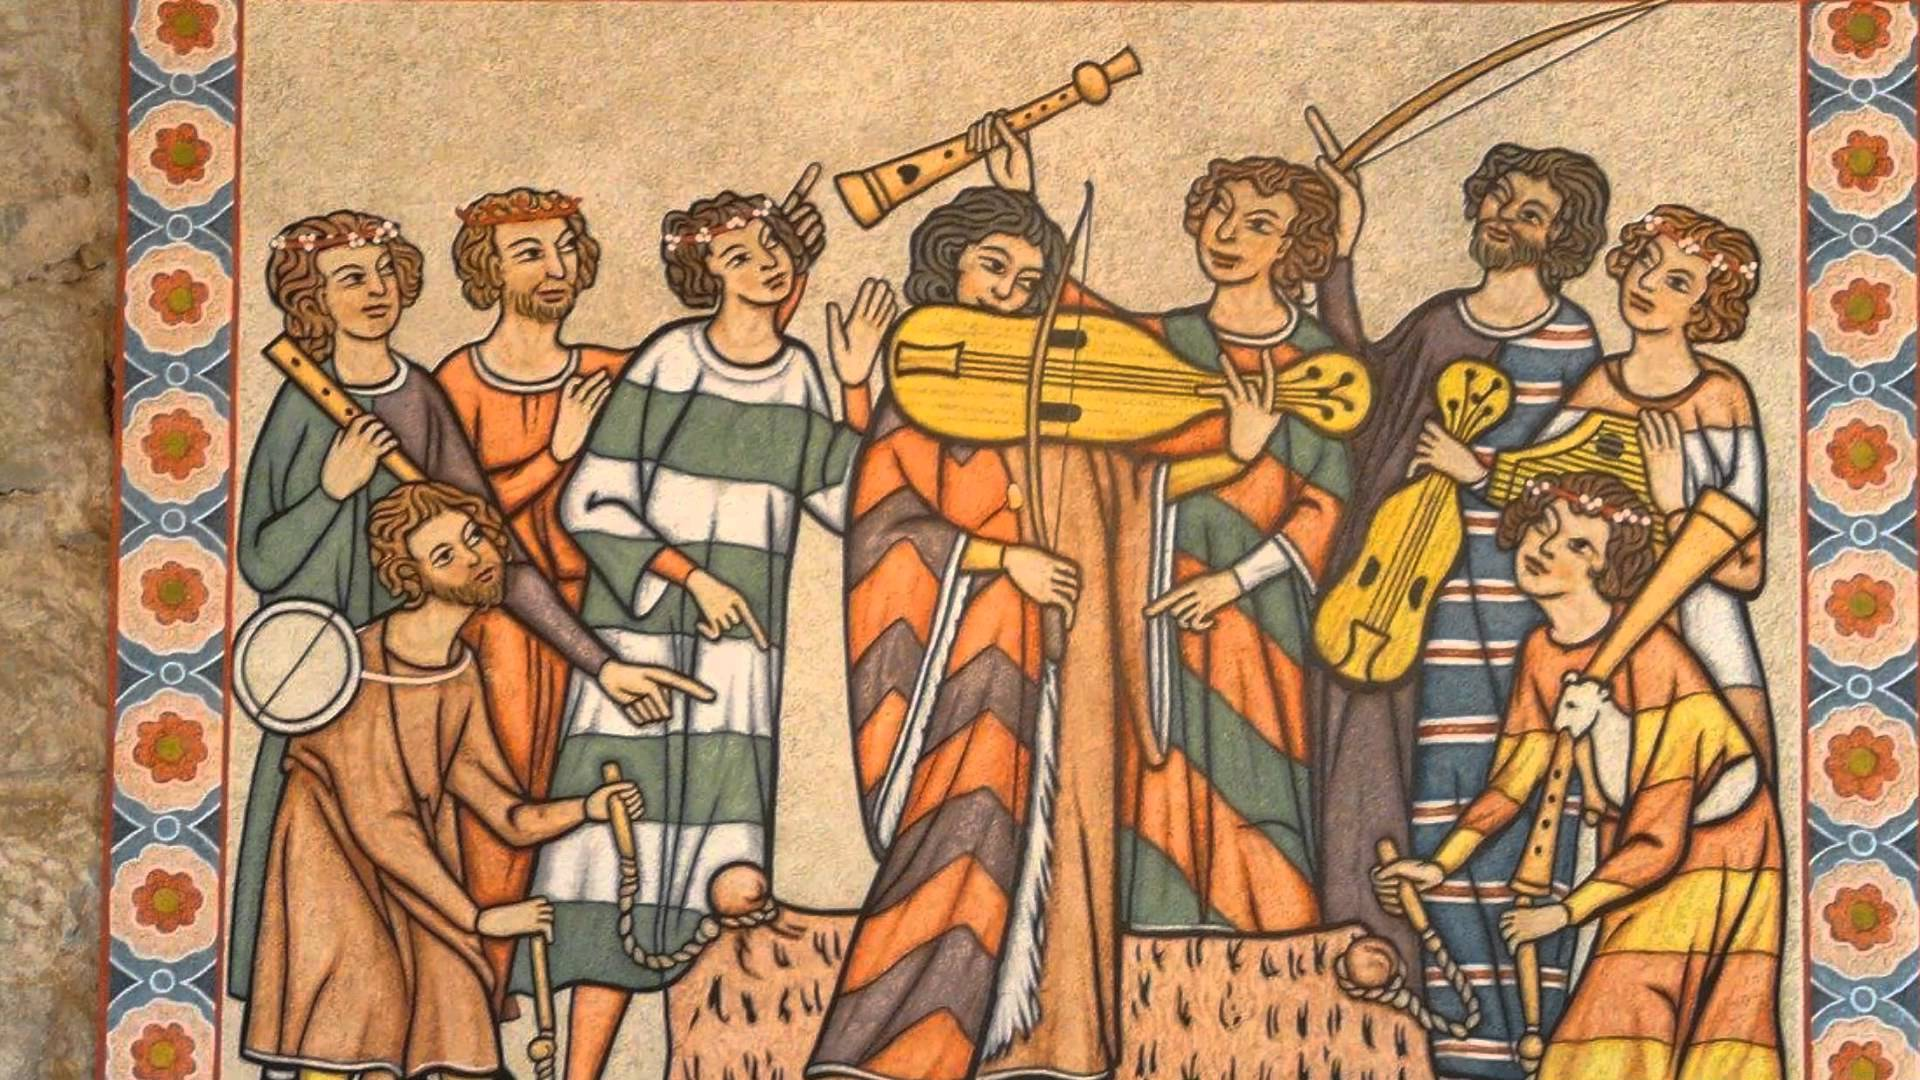 the medieval and renaissance musical periods essay Music was important in the medieval time period because it was a major source of entertainment there were no televisions or radios so people made up fairy tales and made music many instruments were created and used in making music, some of which were very bizarre.